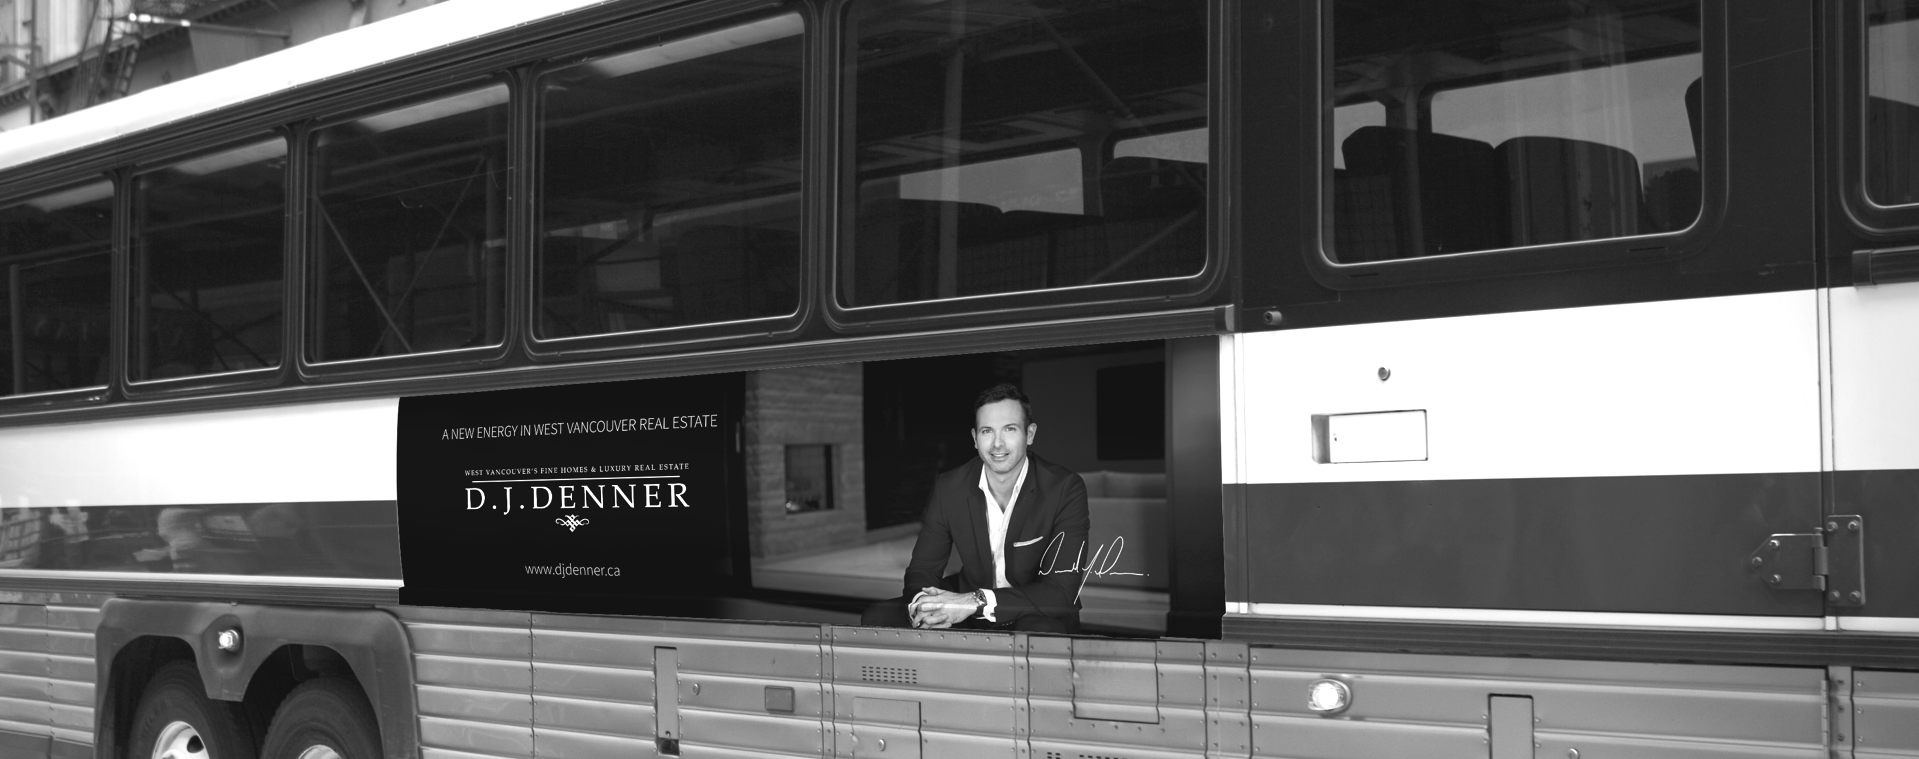 DJ Denner Vancouver Real Estate Agent Bus Ad